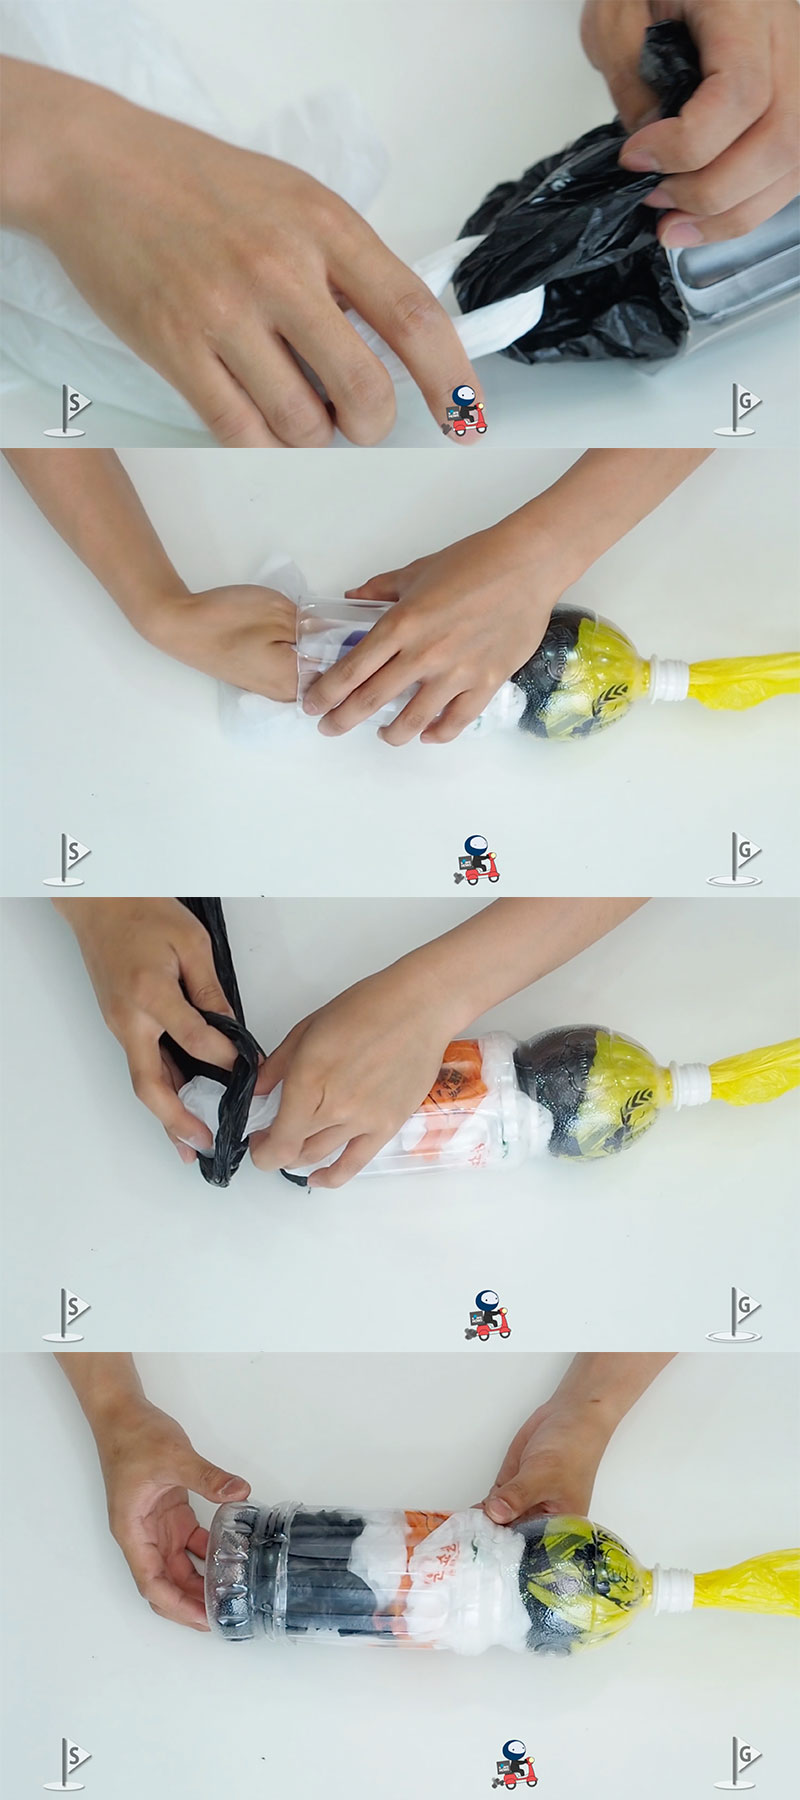 plastic bag life hacks 06